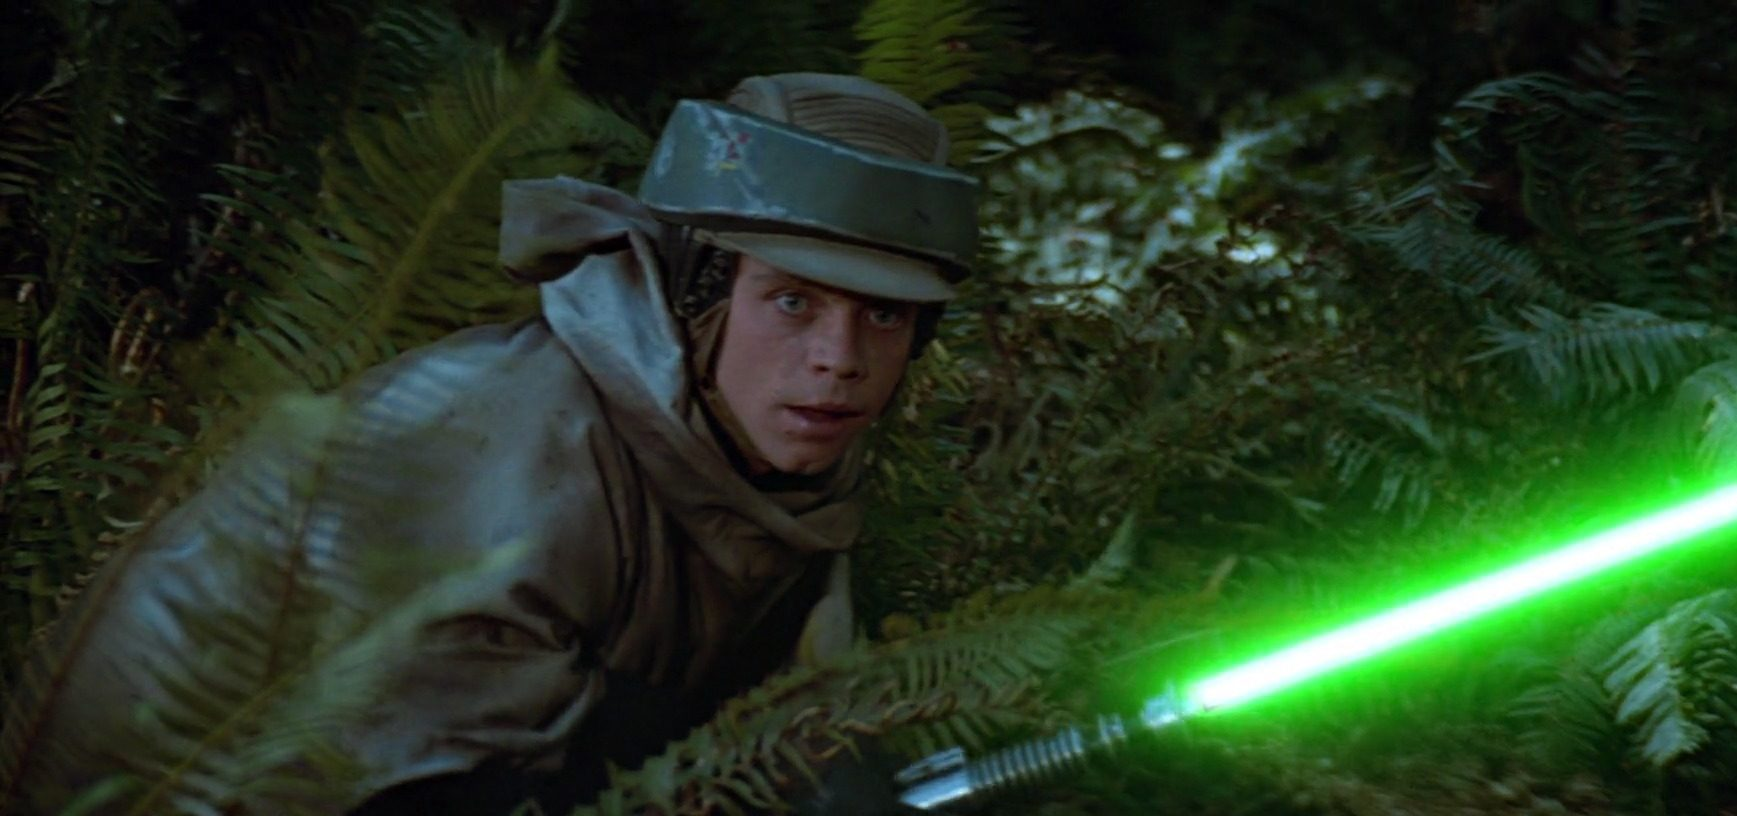 Star Wars Battlefront 2 Endor Luke Skywalker Teased by EA